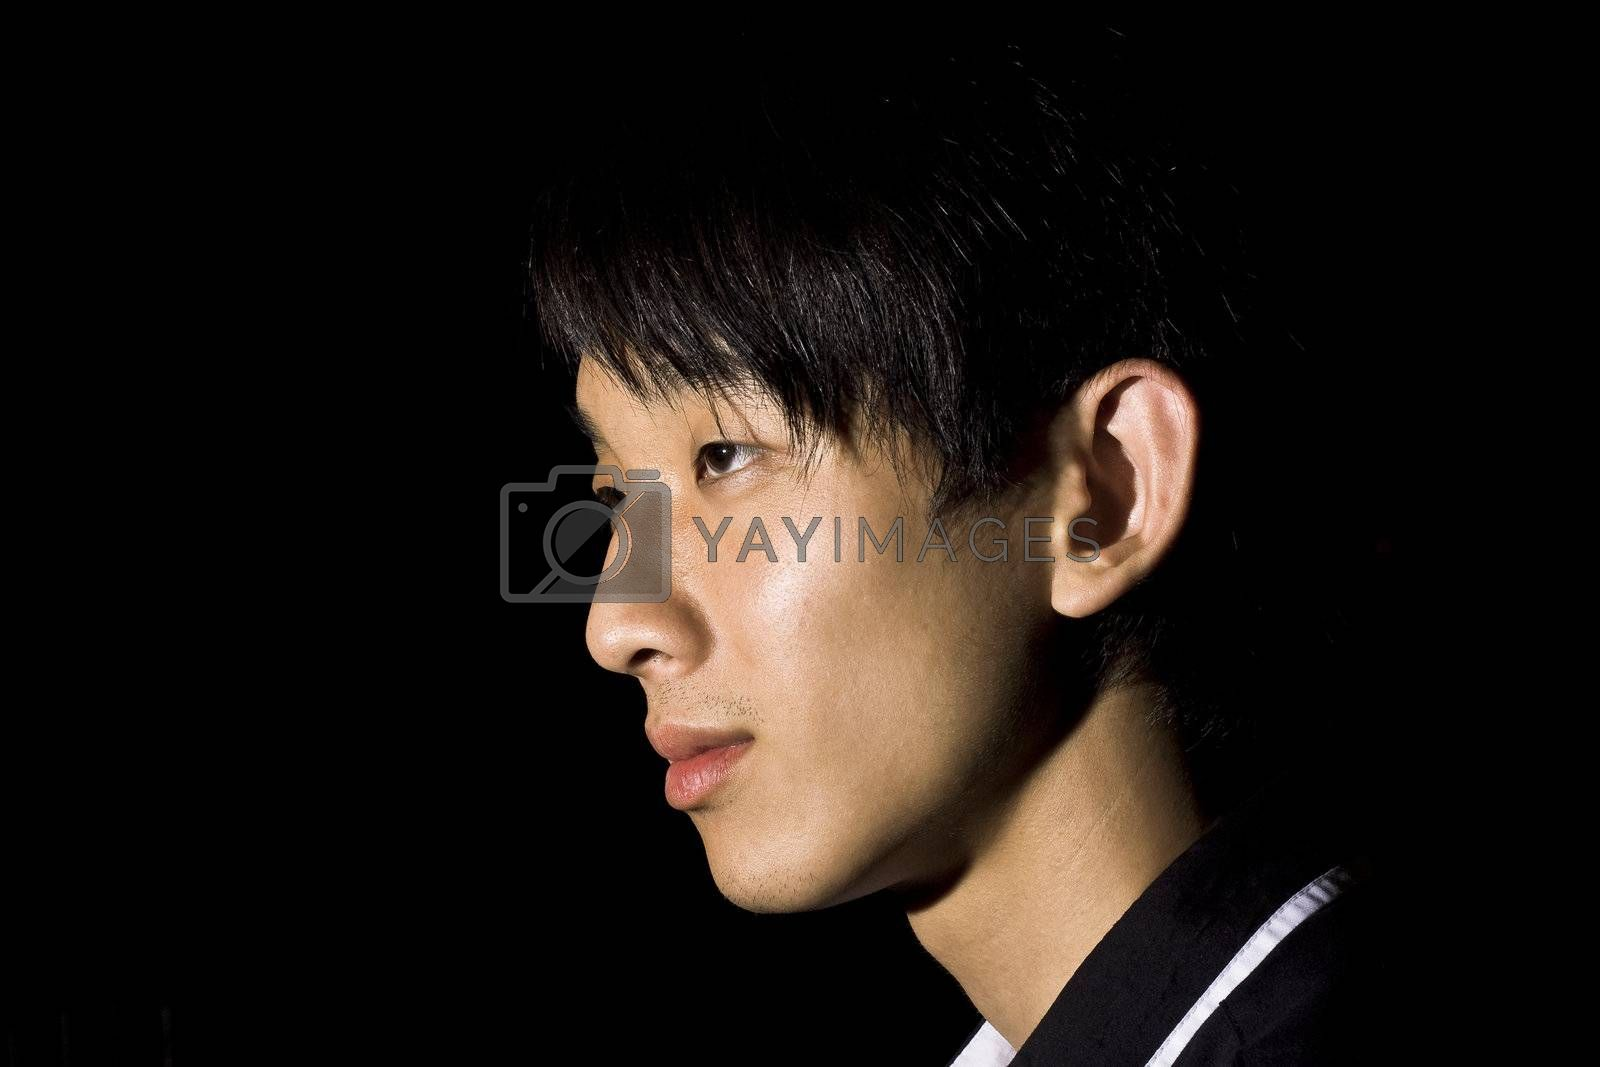 Portrait of an Asian man in the darkness for texture